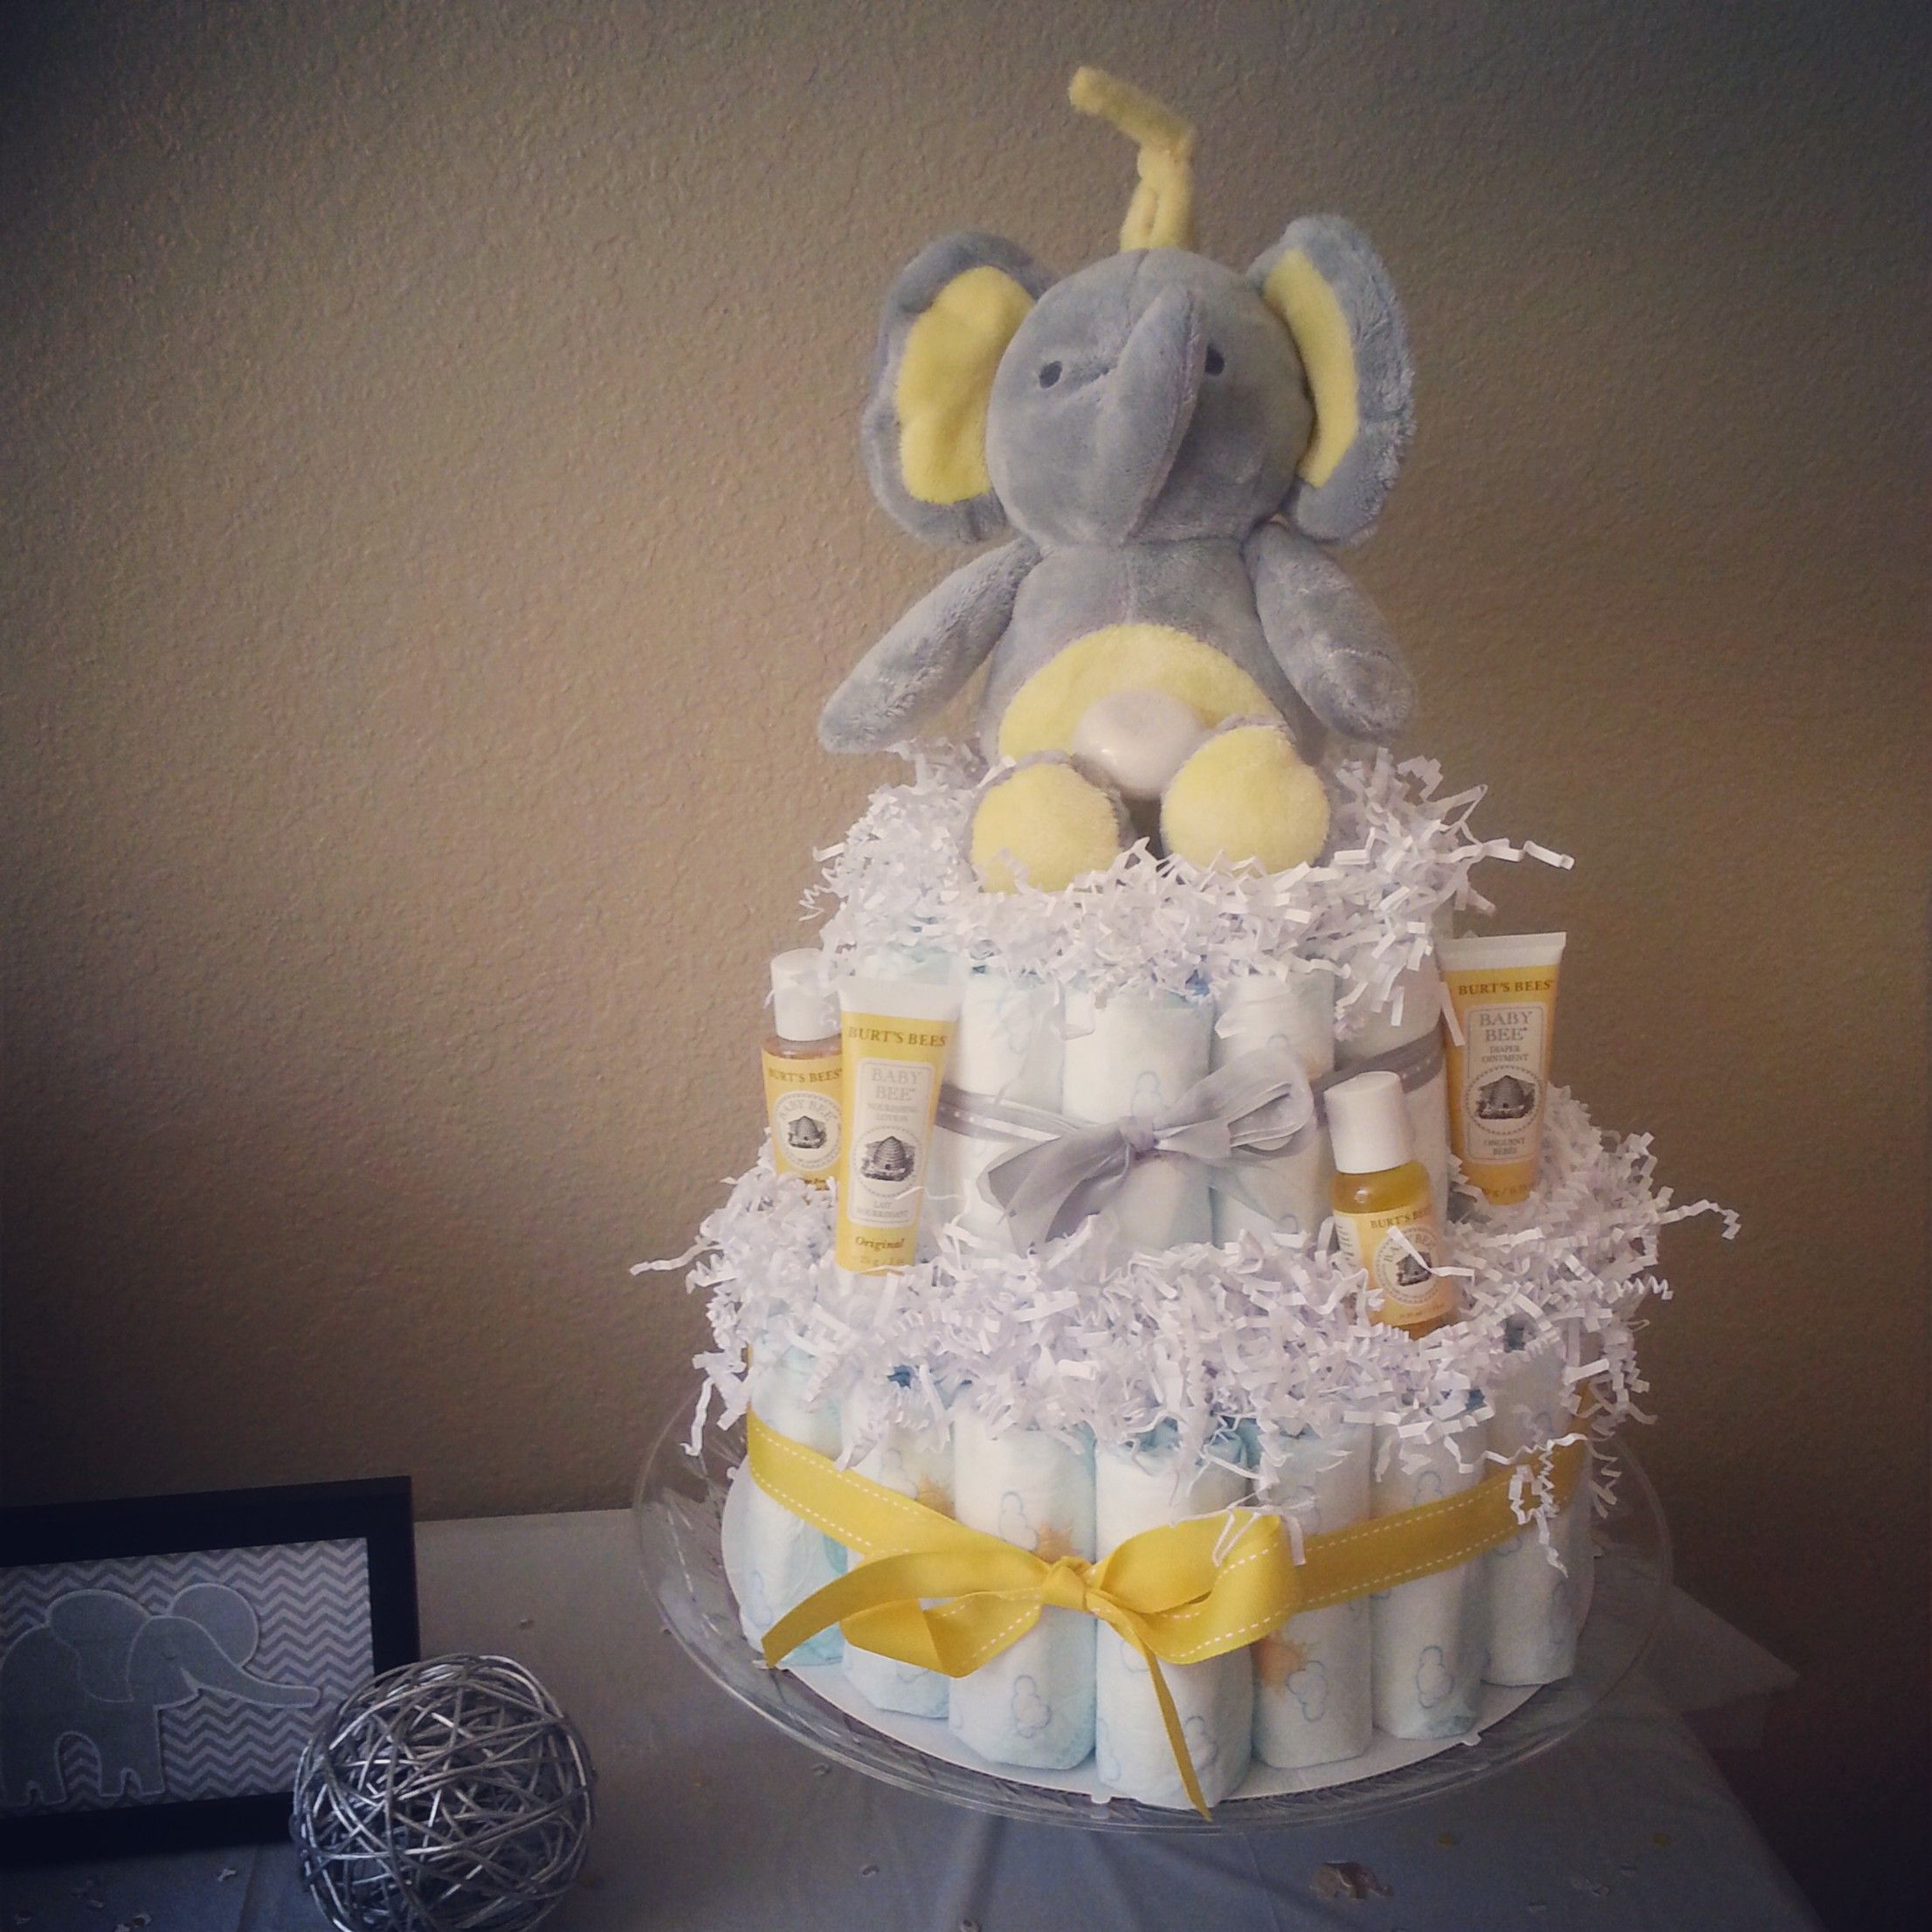 Gender neutral baby shower ideas pinterest - S J S Gray Yellow Gender Neutral Baby Shower By Apogee Events Elephant